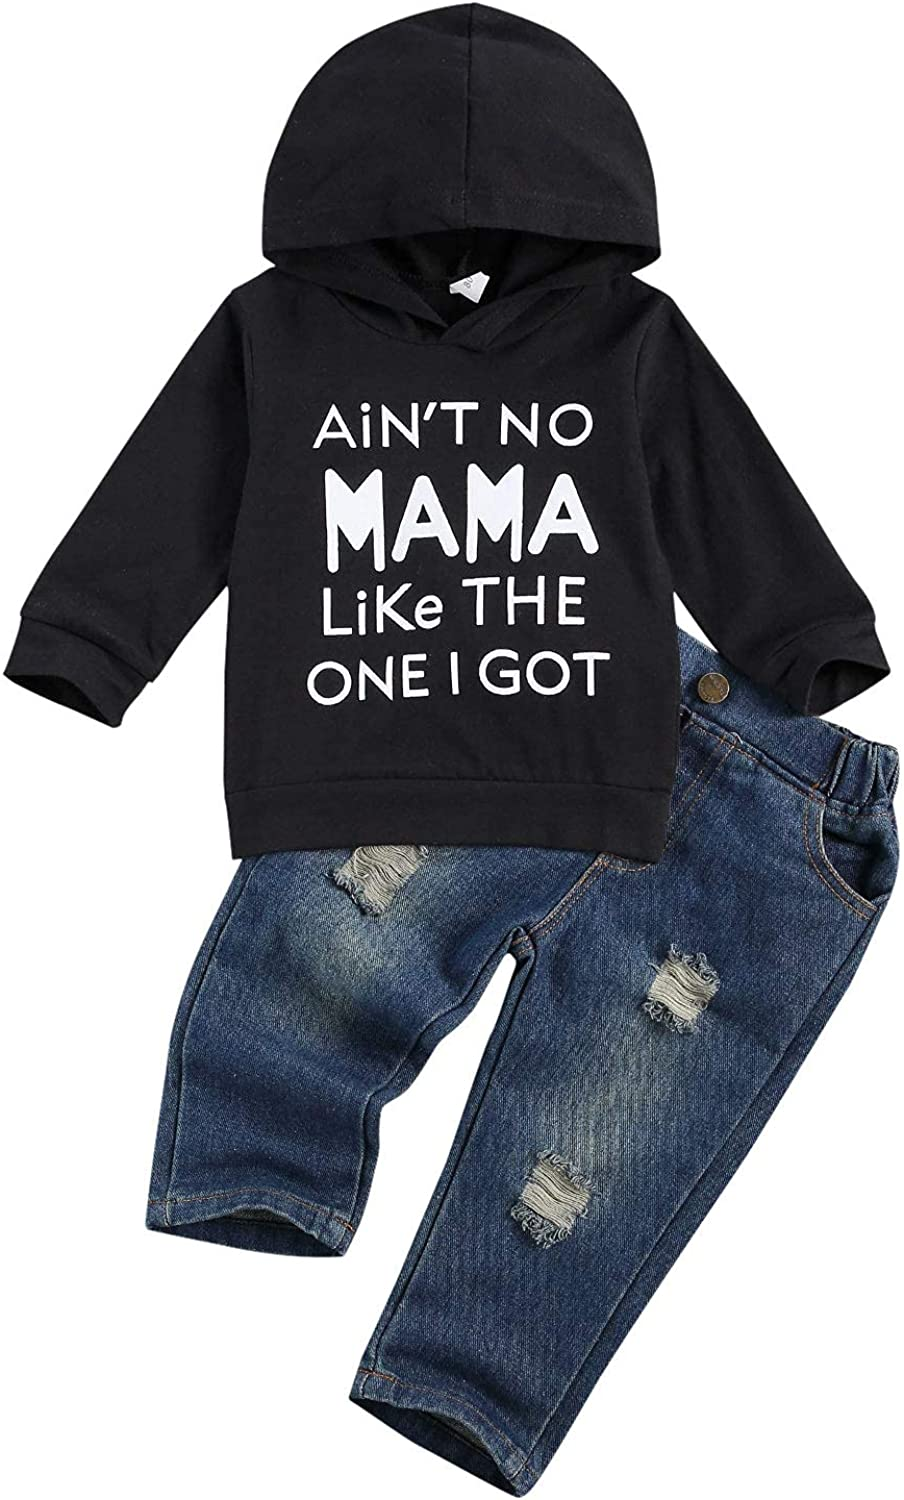 Shejingb Kids Toddler Baby Boy Hoodie Sweatshirt Outfit Letter Print Sweater Tops&Jeans Pants Set Fall Winter Jogging Clothes